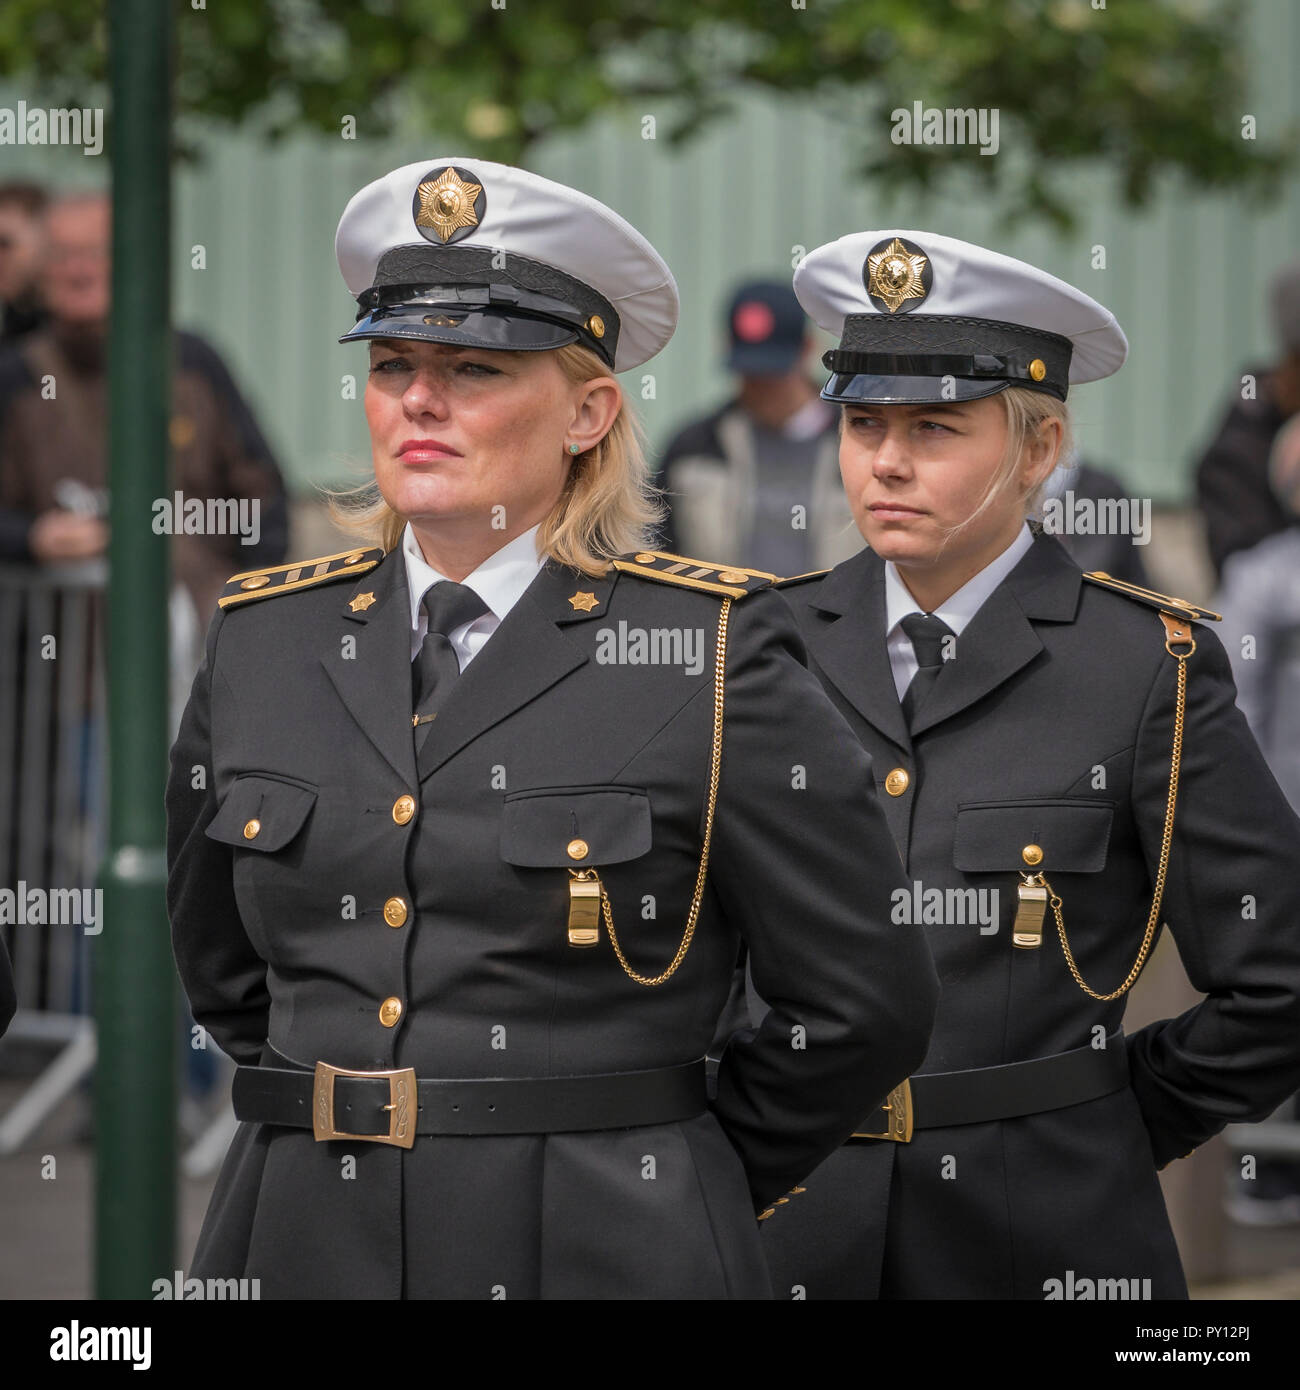 Female Icelandic police dressed in formal uniforms, during Iceland's Independence Day, Reykjavik, Iceland - Stock Image